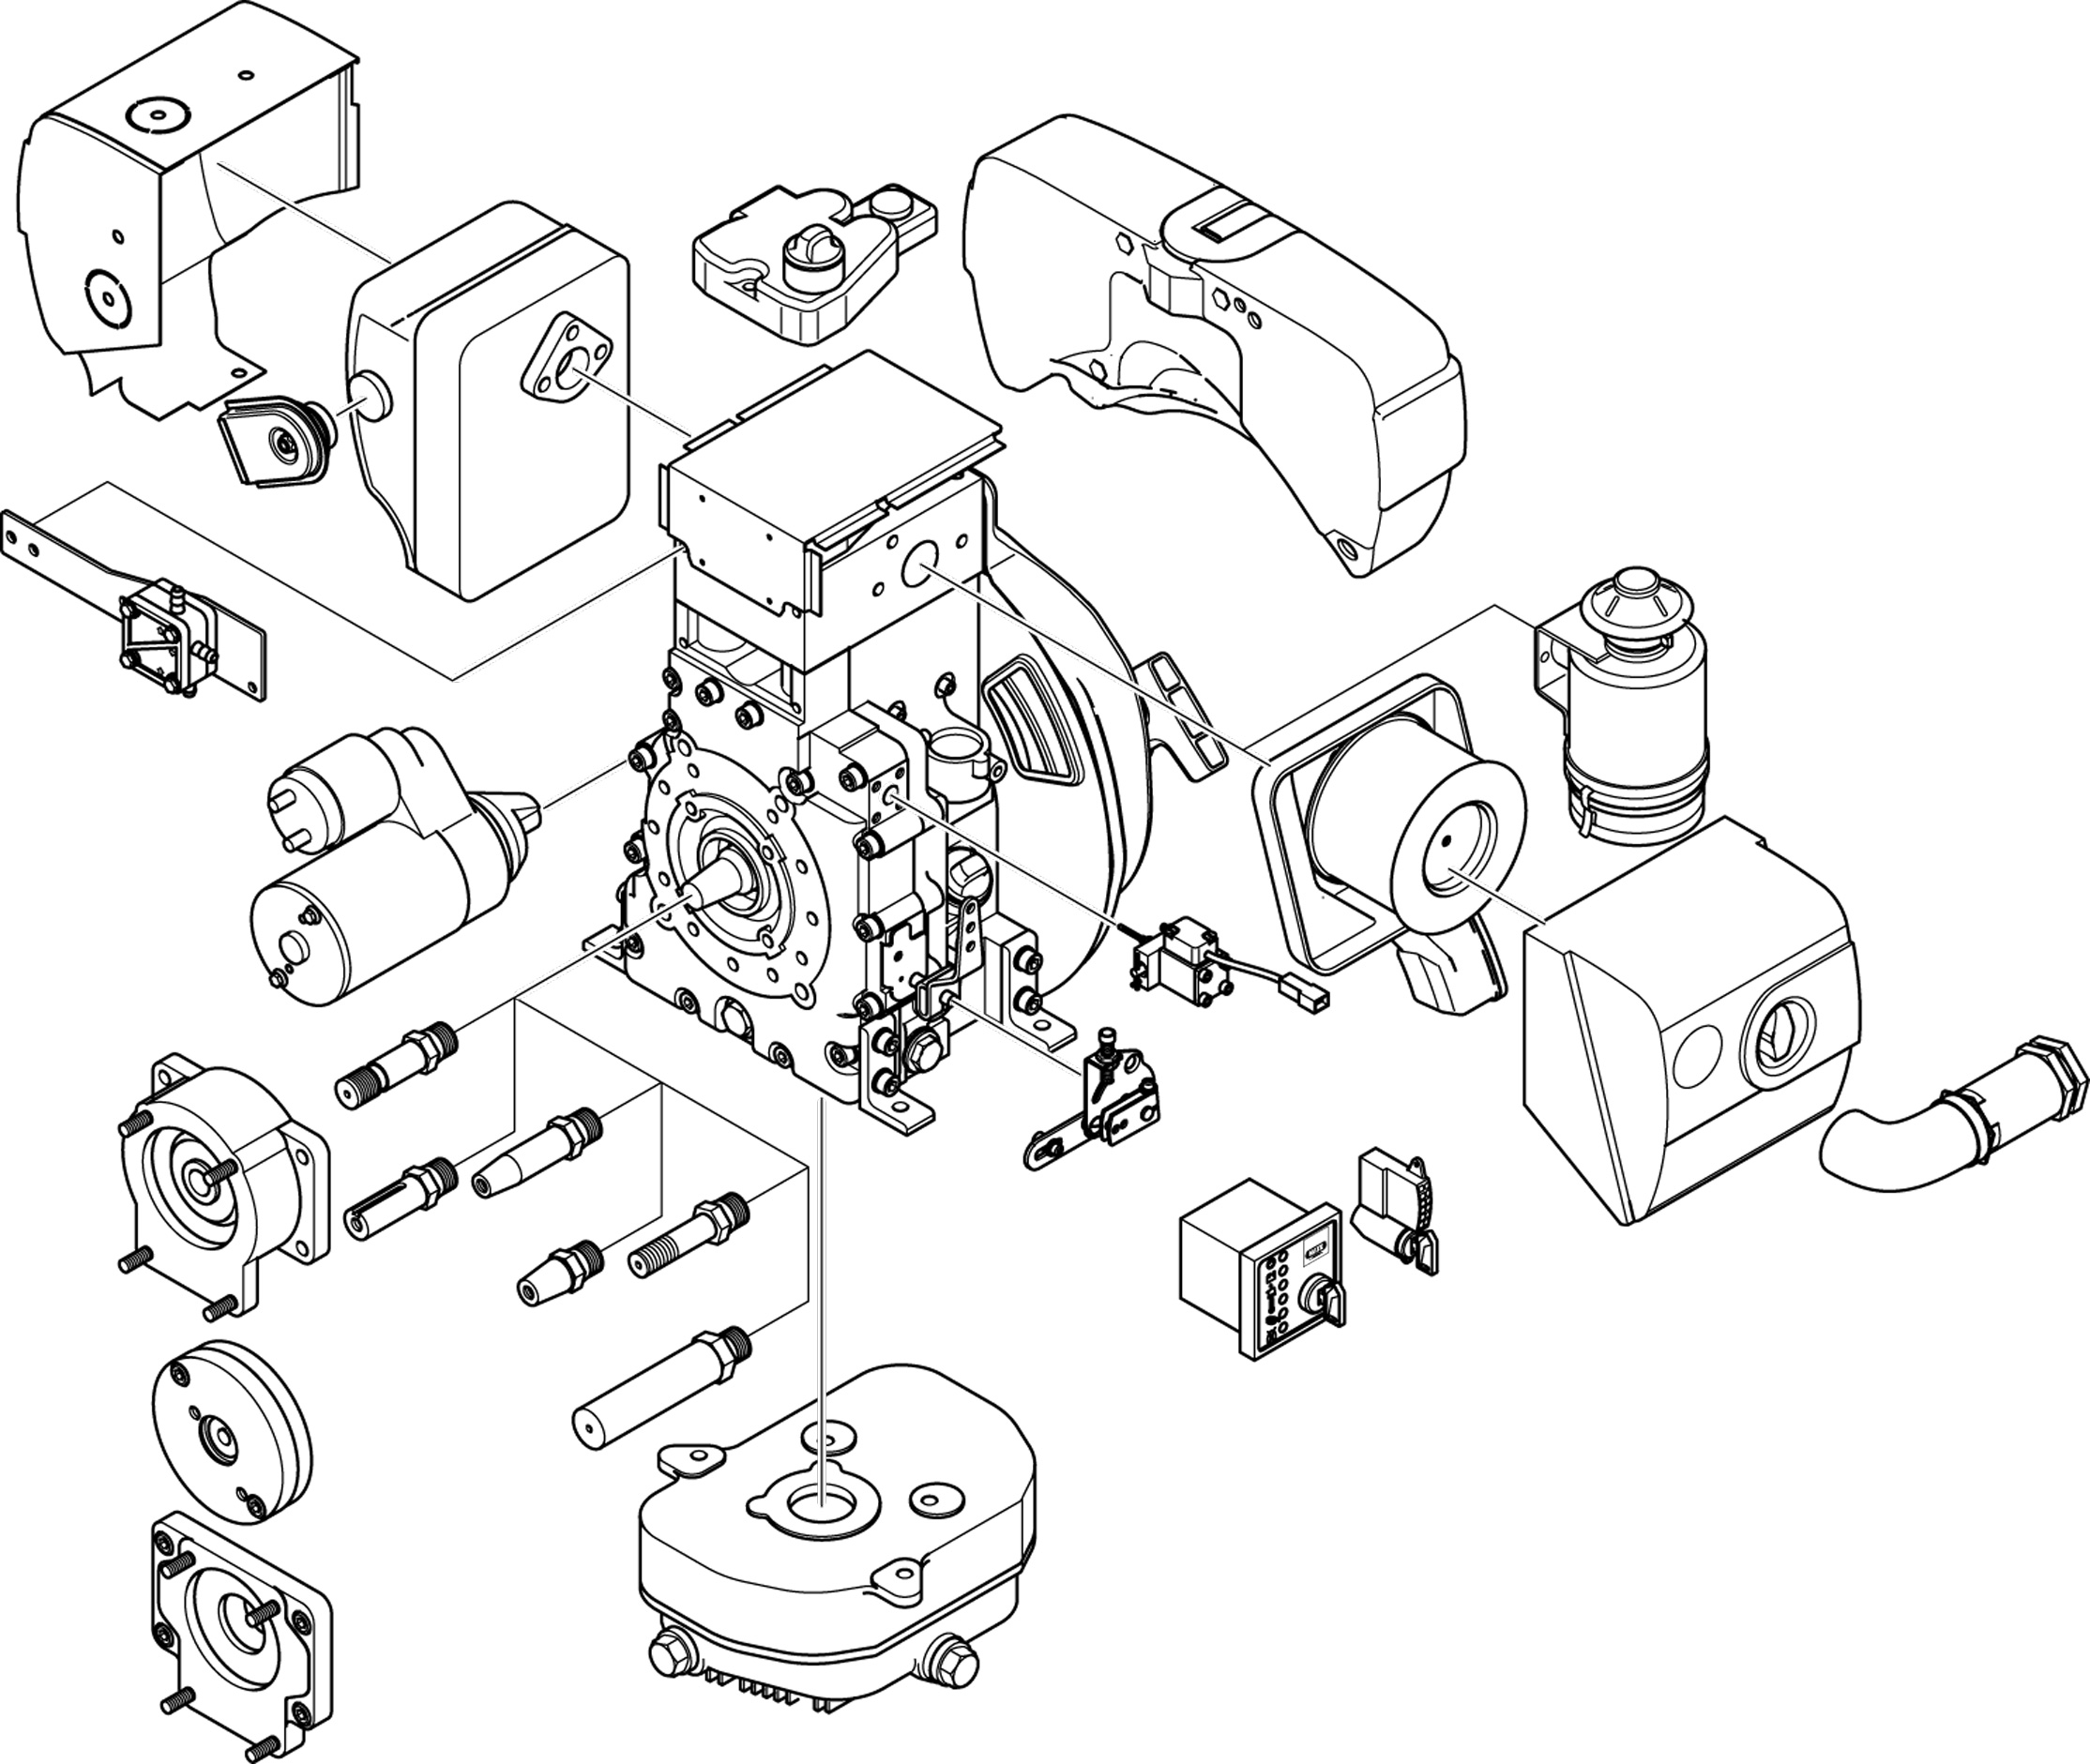 Engine parts drawing